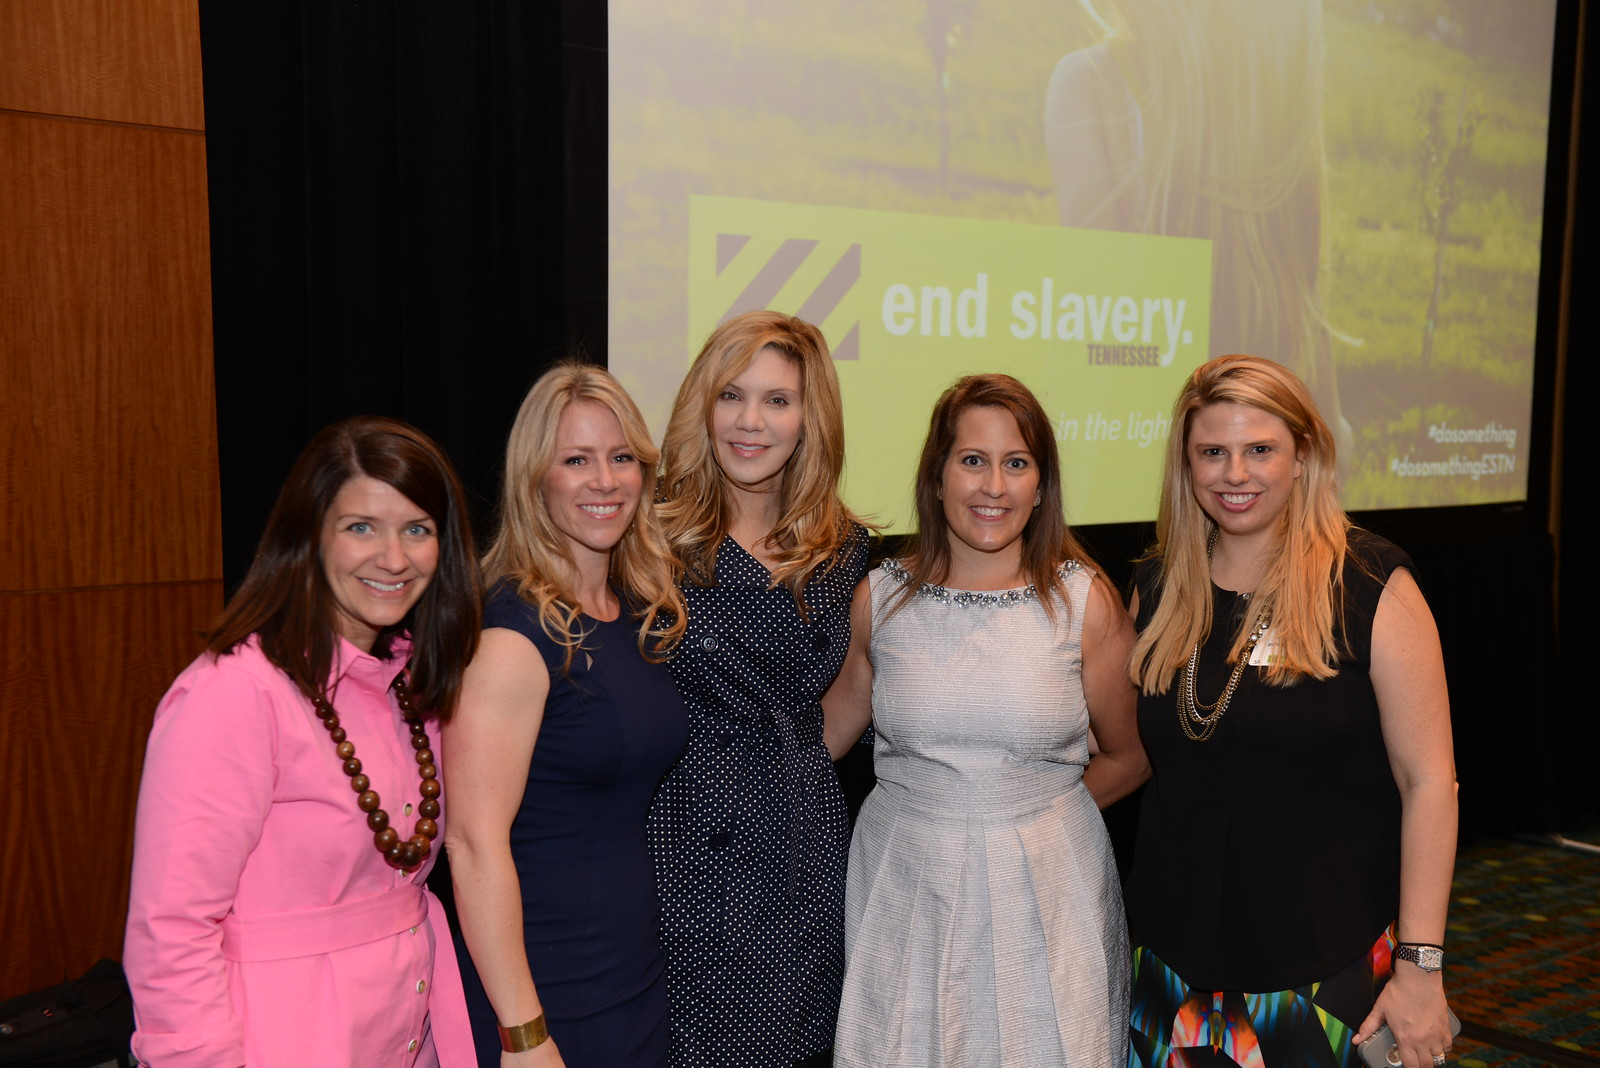 Alison Kruass with Luncheon Event Committee. Pictured from left to right: Callen Martin, Brandi Binkley, Alison Krauss, Christy Pennington, Whitney Akin